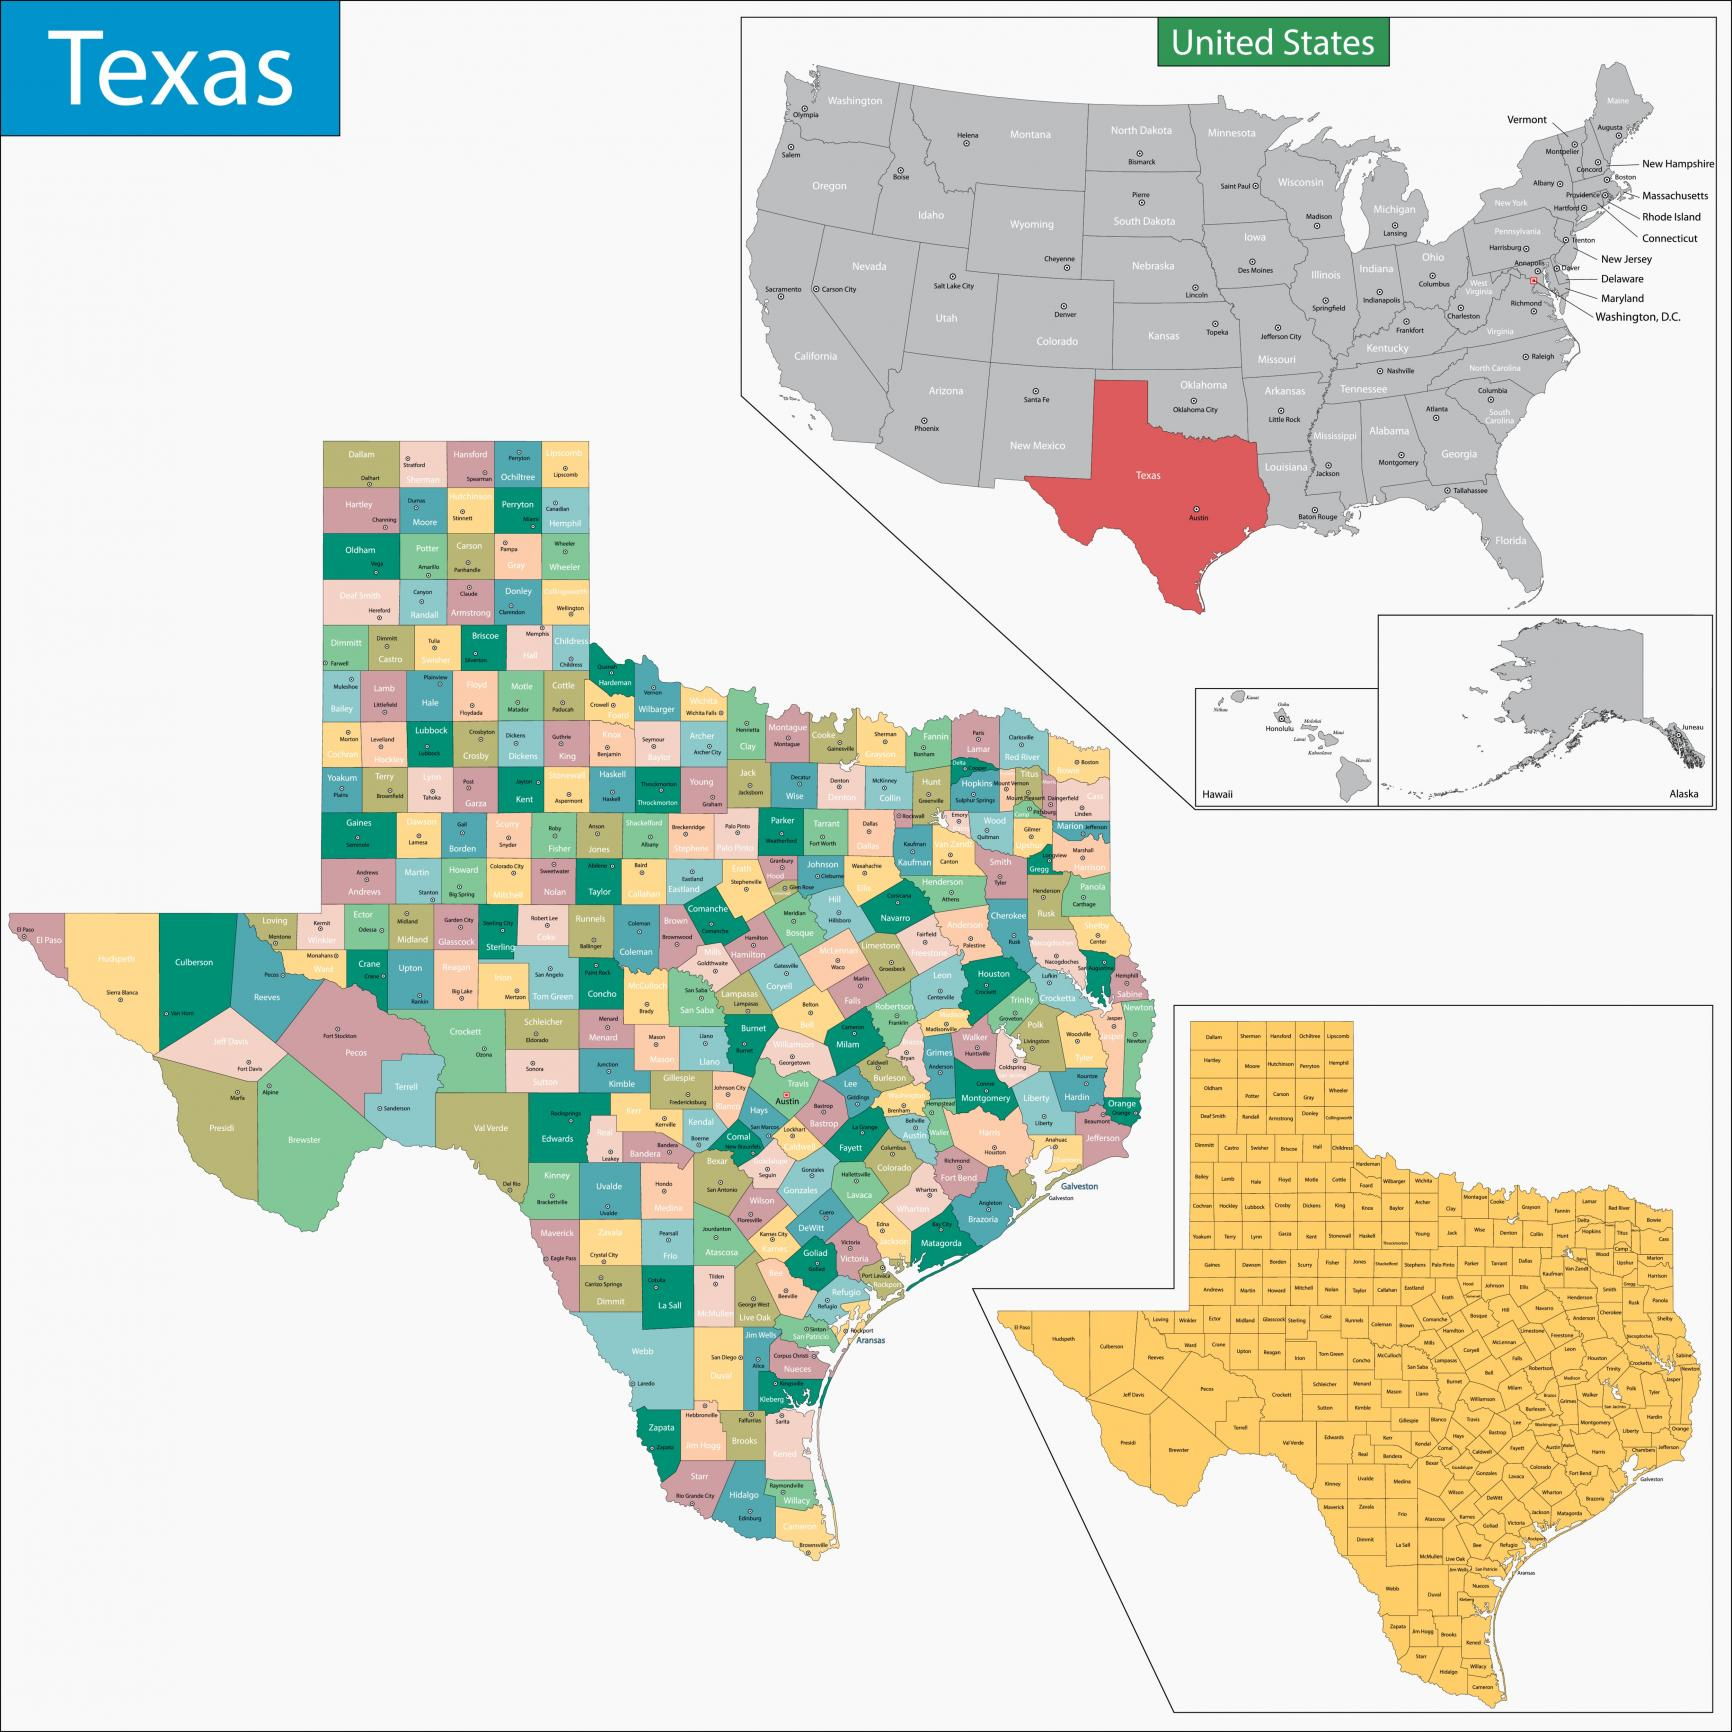 Texas Jigsaw Puzzles ProProfs Jigsaw Puzzle Games - Texas map puzzle